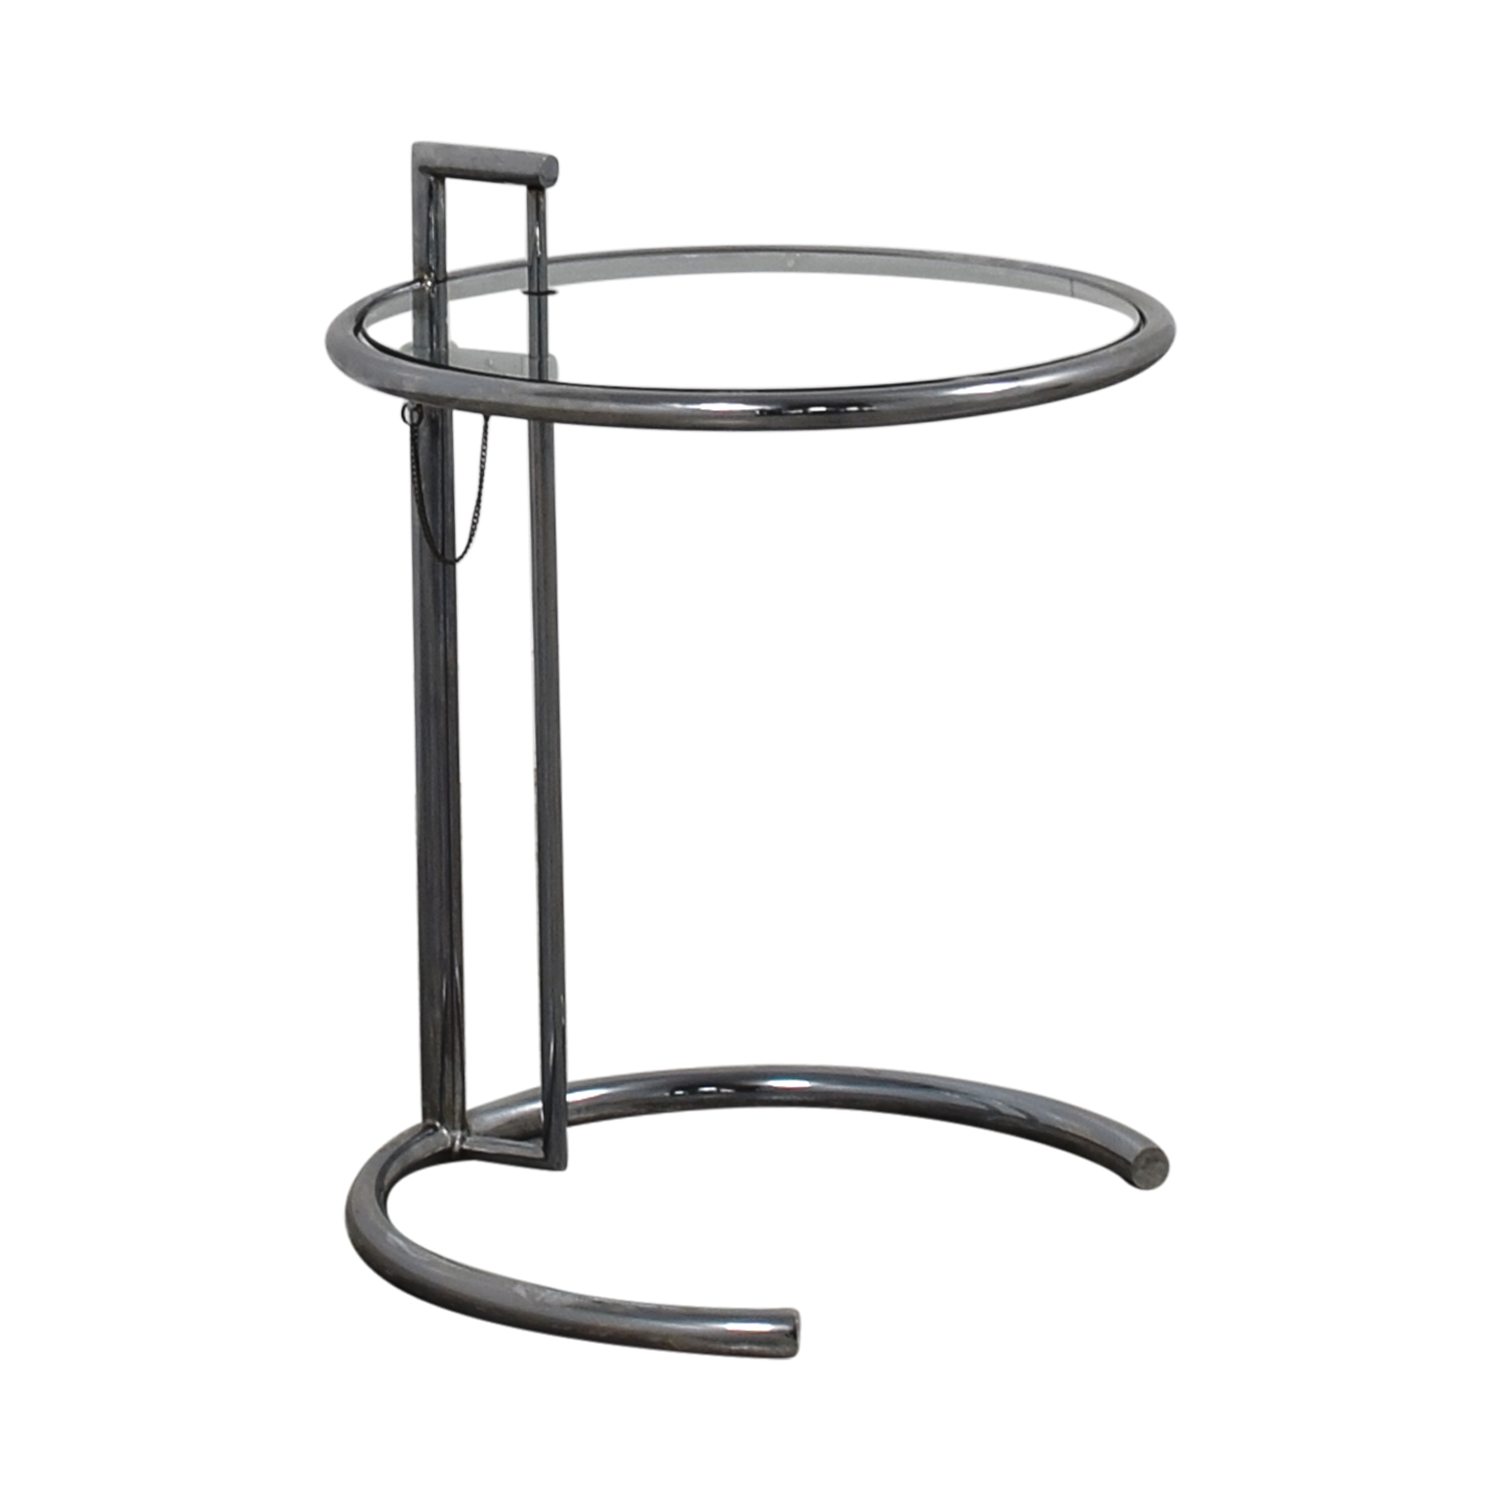 Eileen Gray Eileen Gray Round Glass and Metal Side Table price